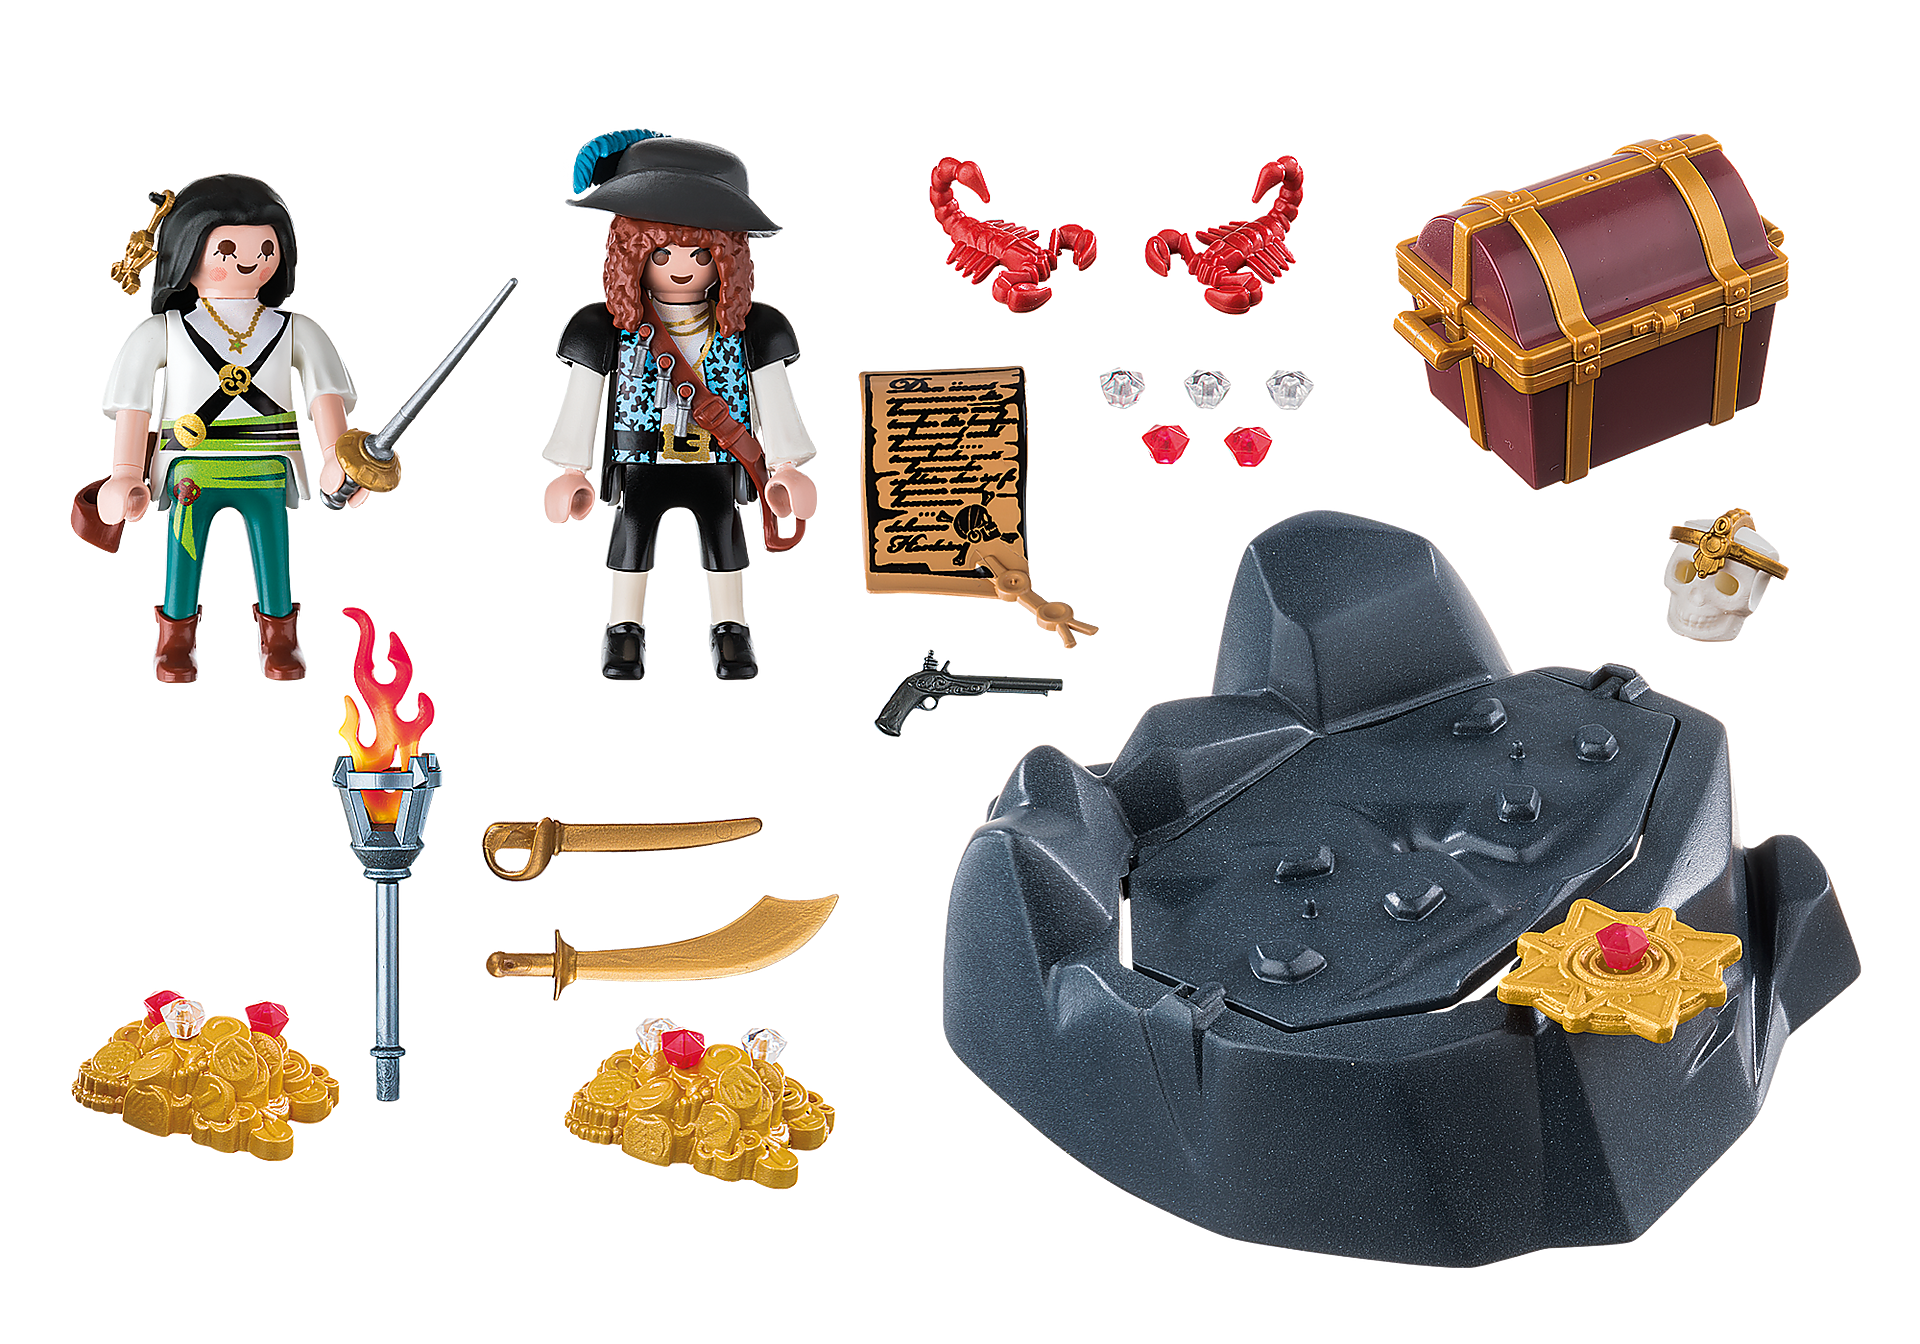 http://media.playmobil.com/i/playmobil/6683_product_box_back/Piraten-Schatzversteck